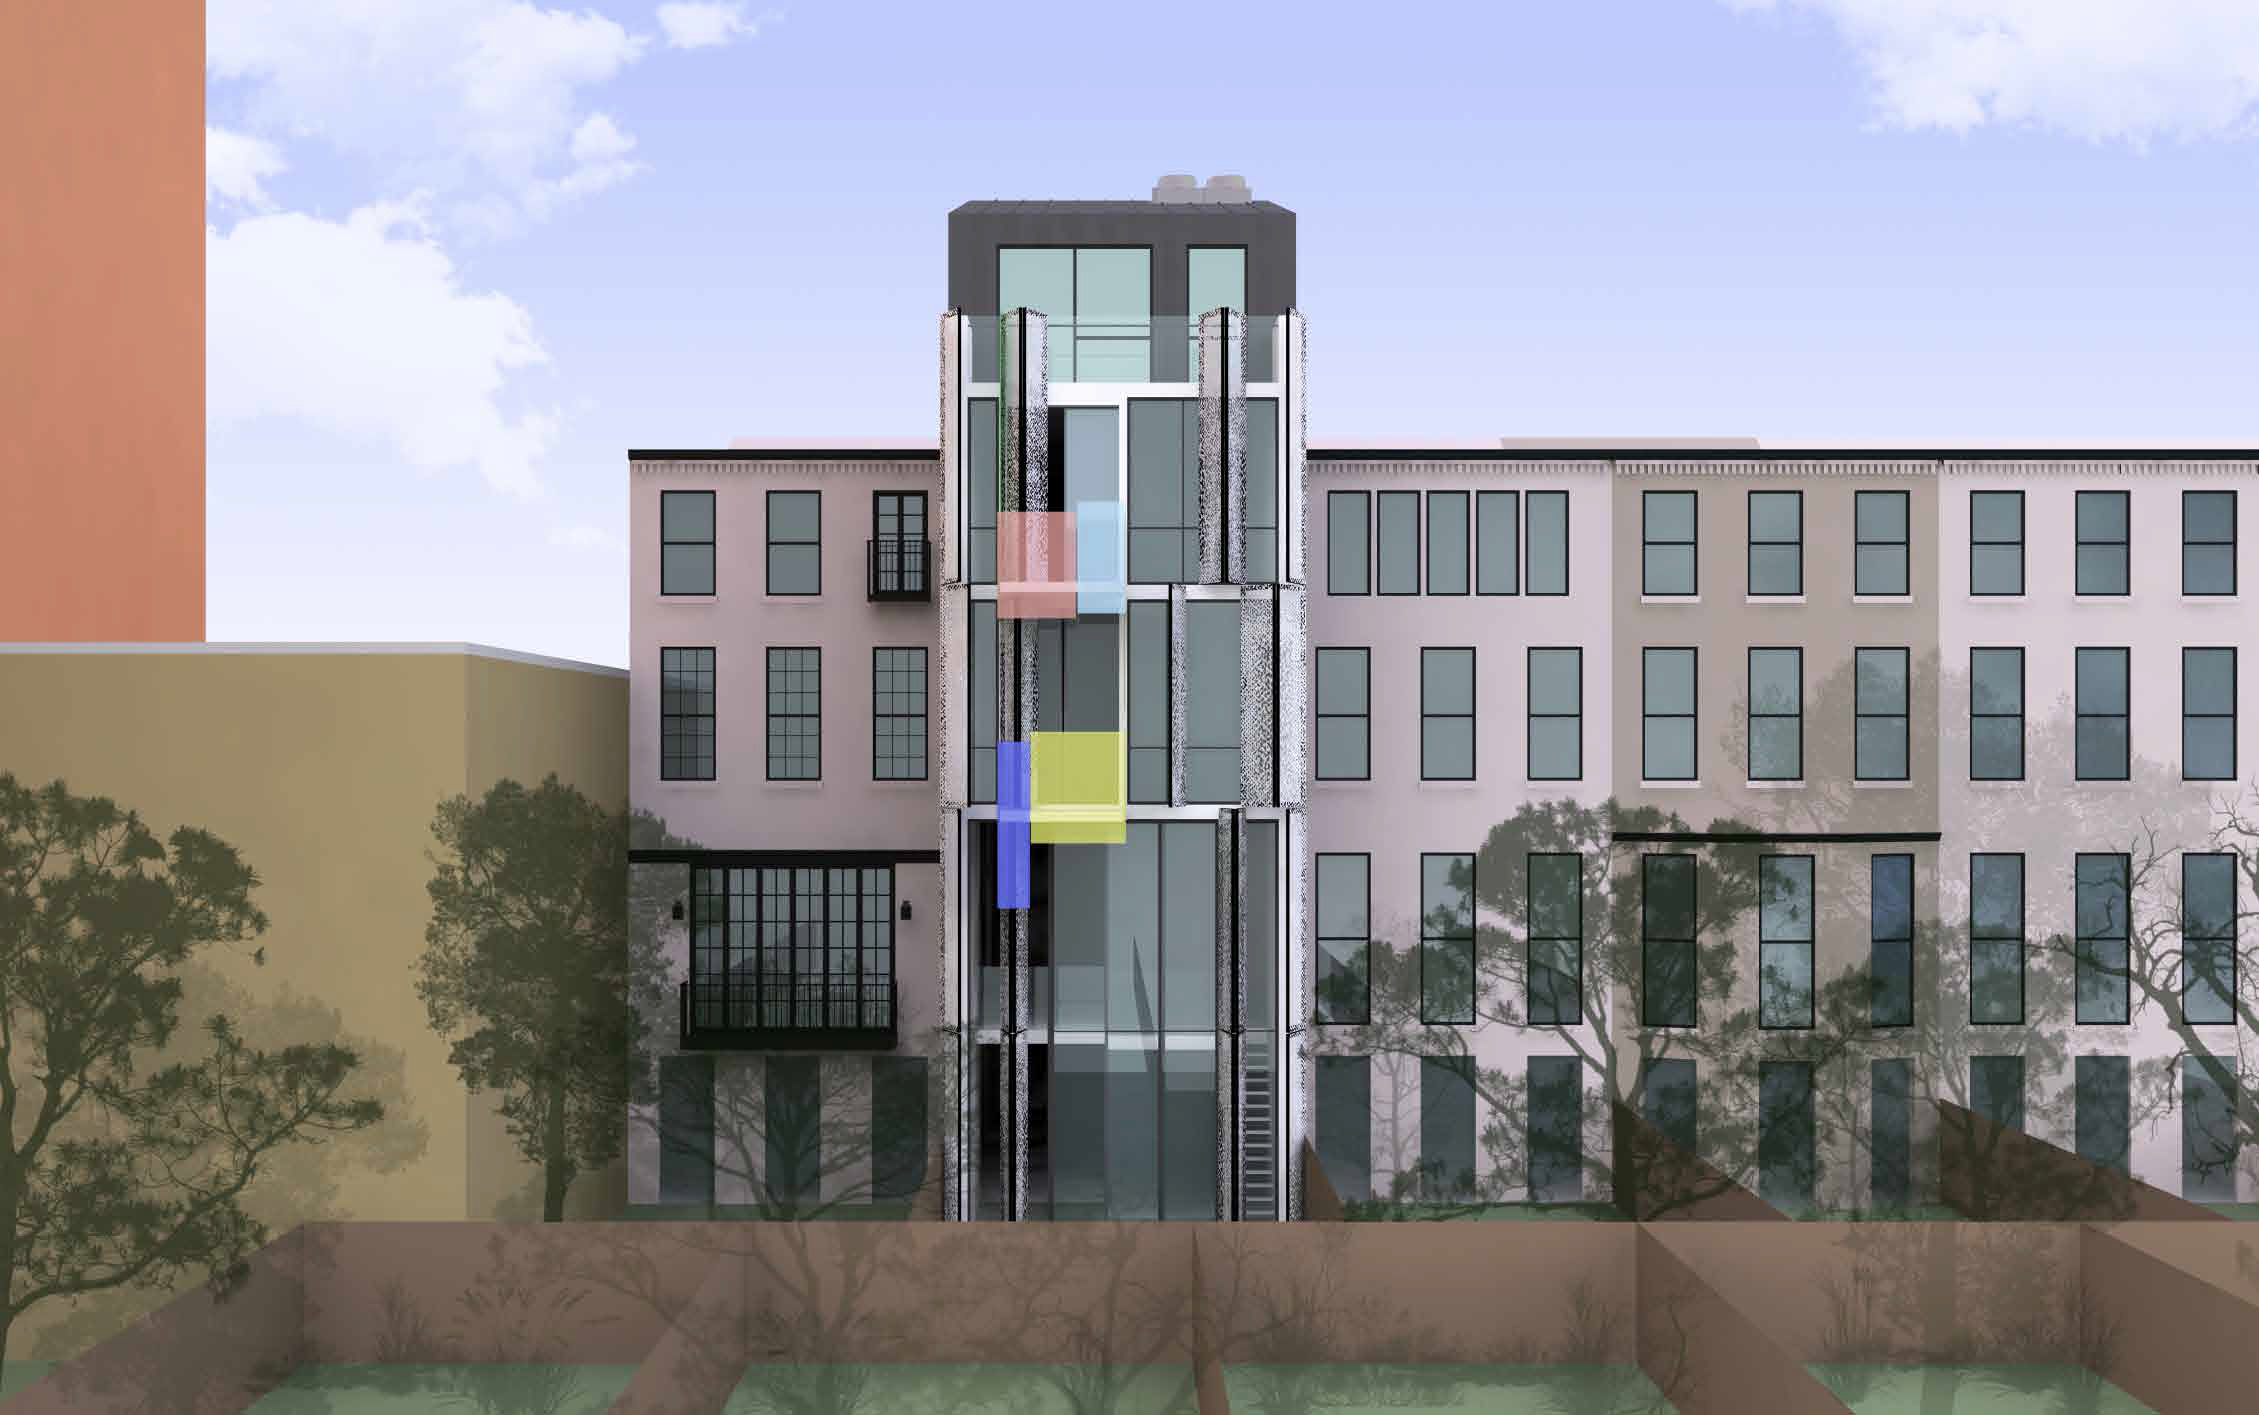 Proposed rear of 210 East 62nd Street, with screen open